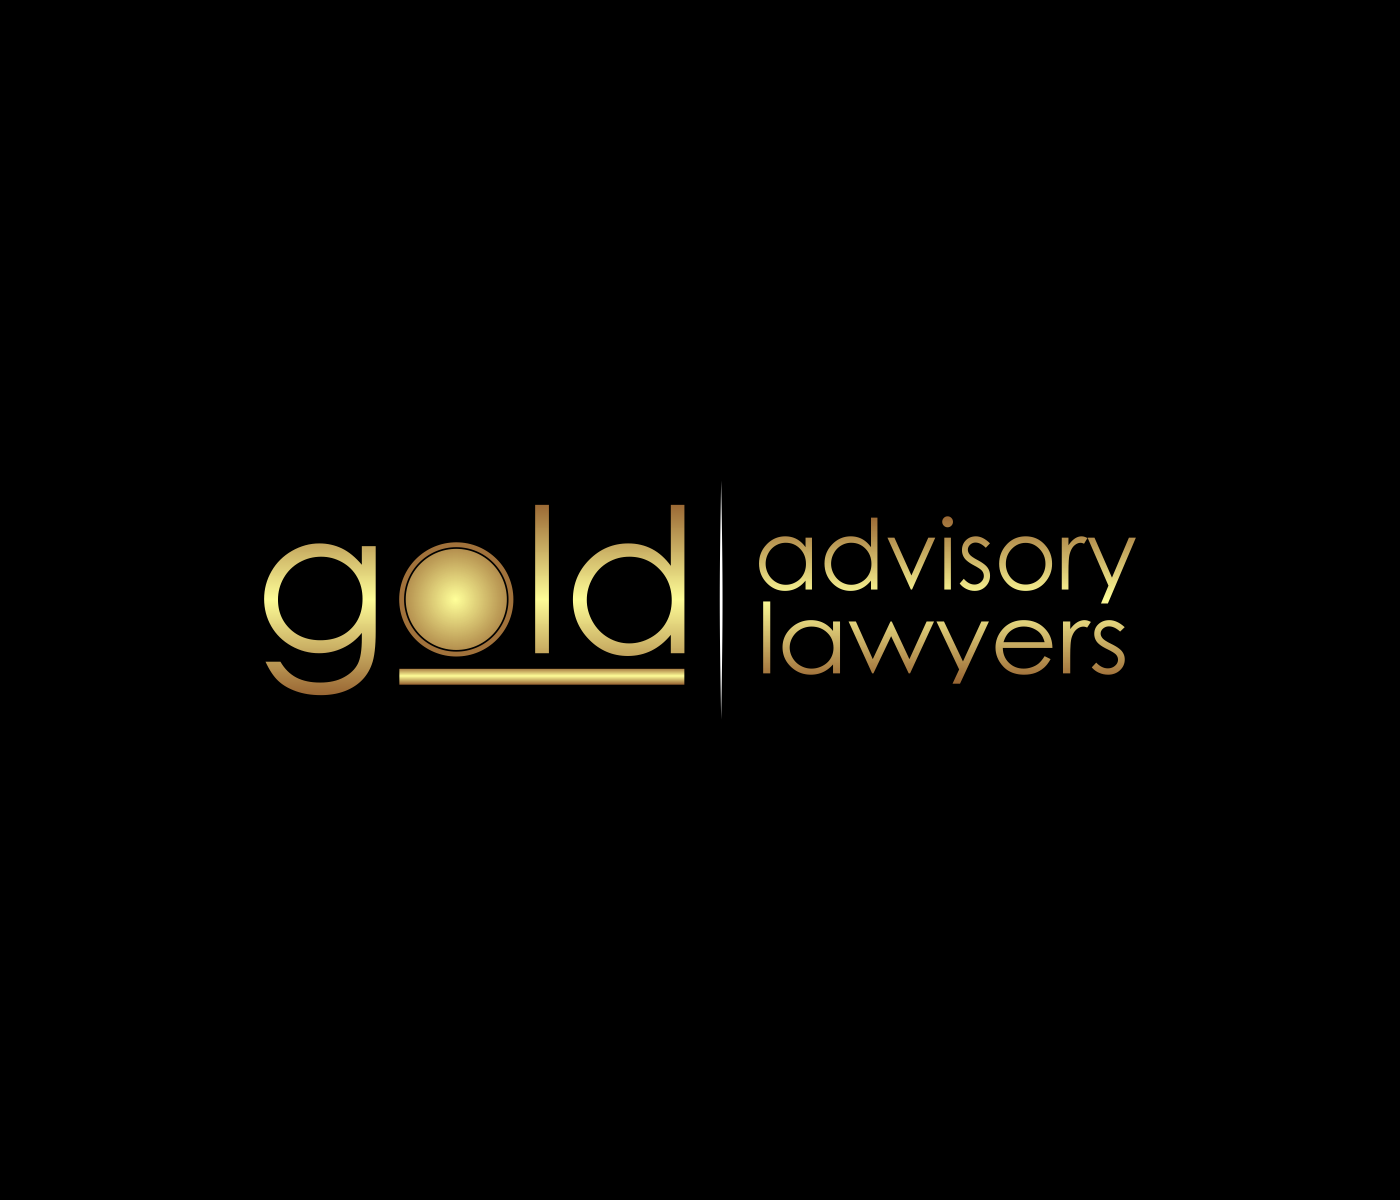 logo and business card for Gold Advisory Lawyers